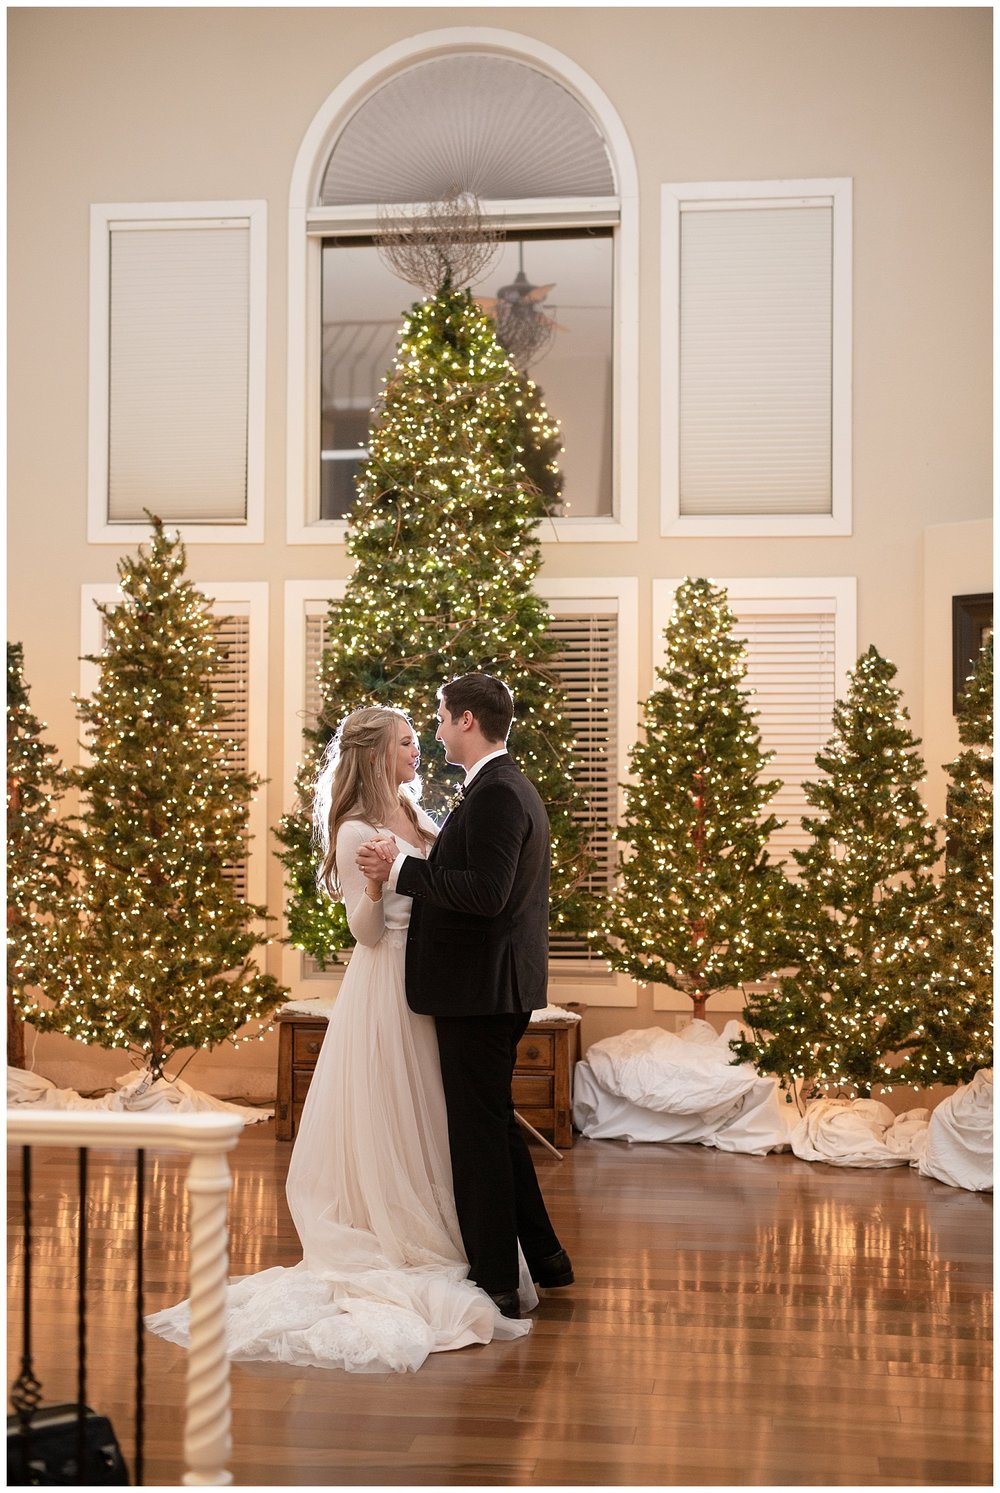 The bride and groom share their first dance surrounded by Christmas trees